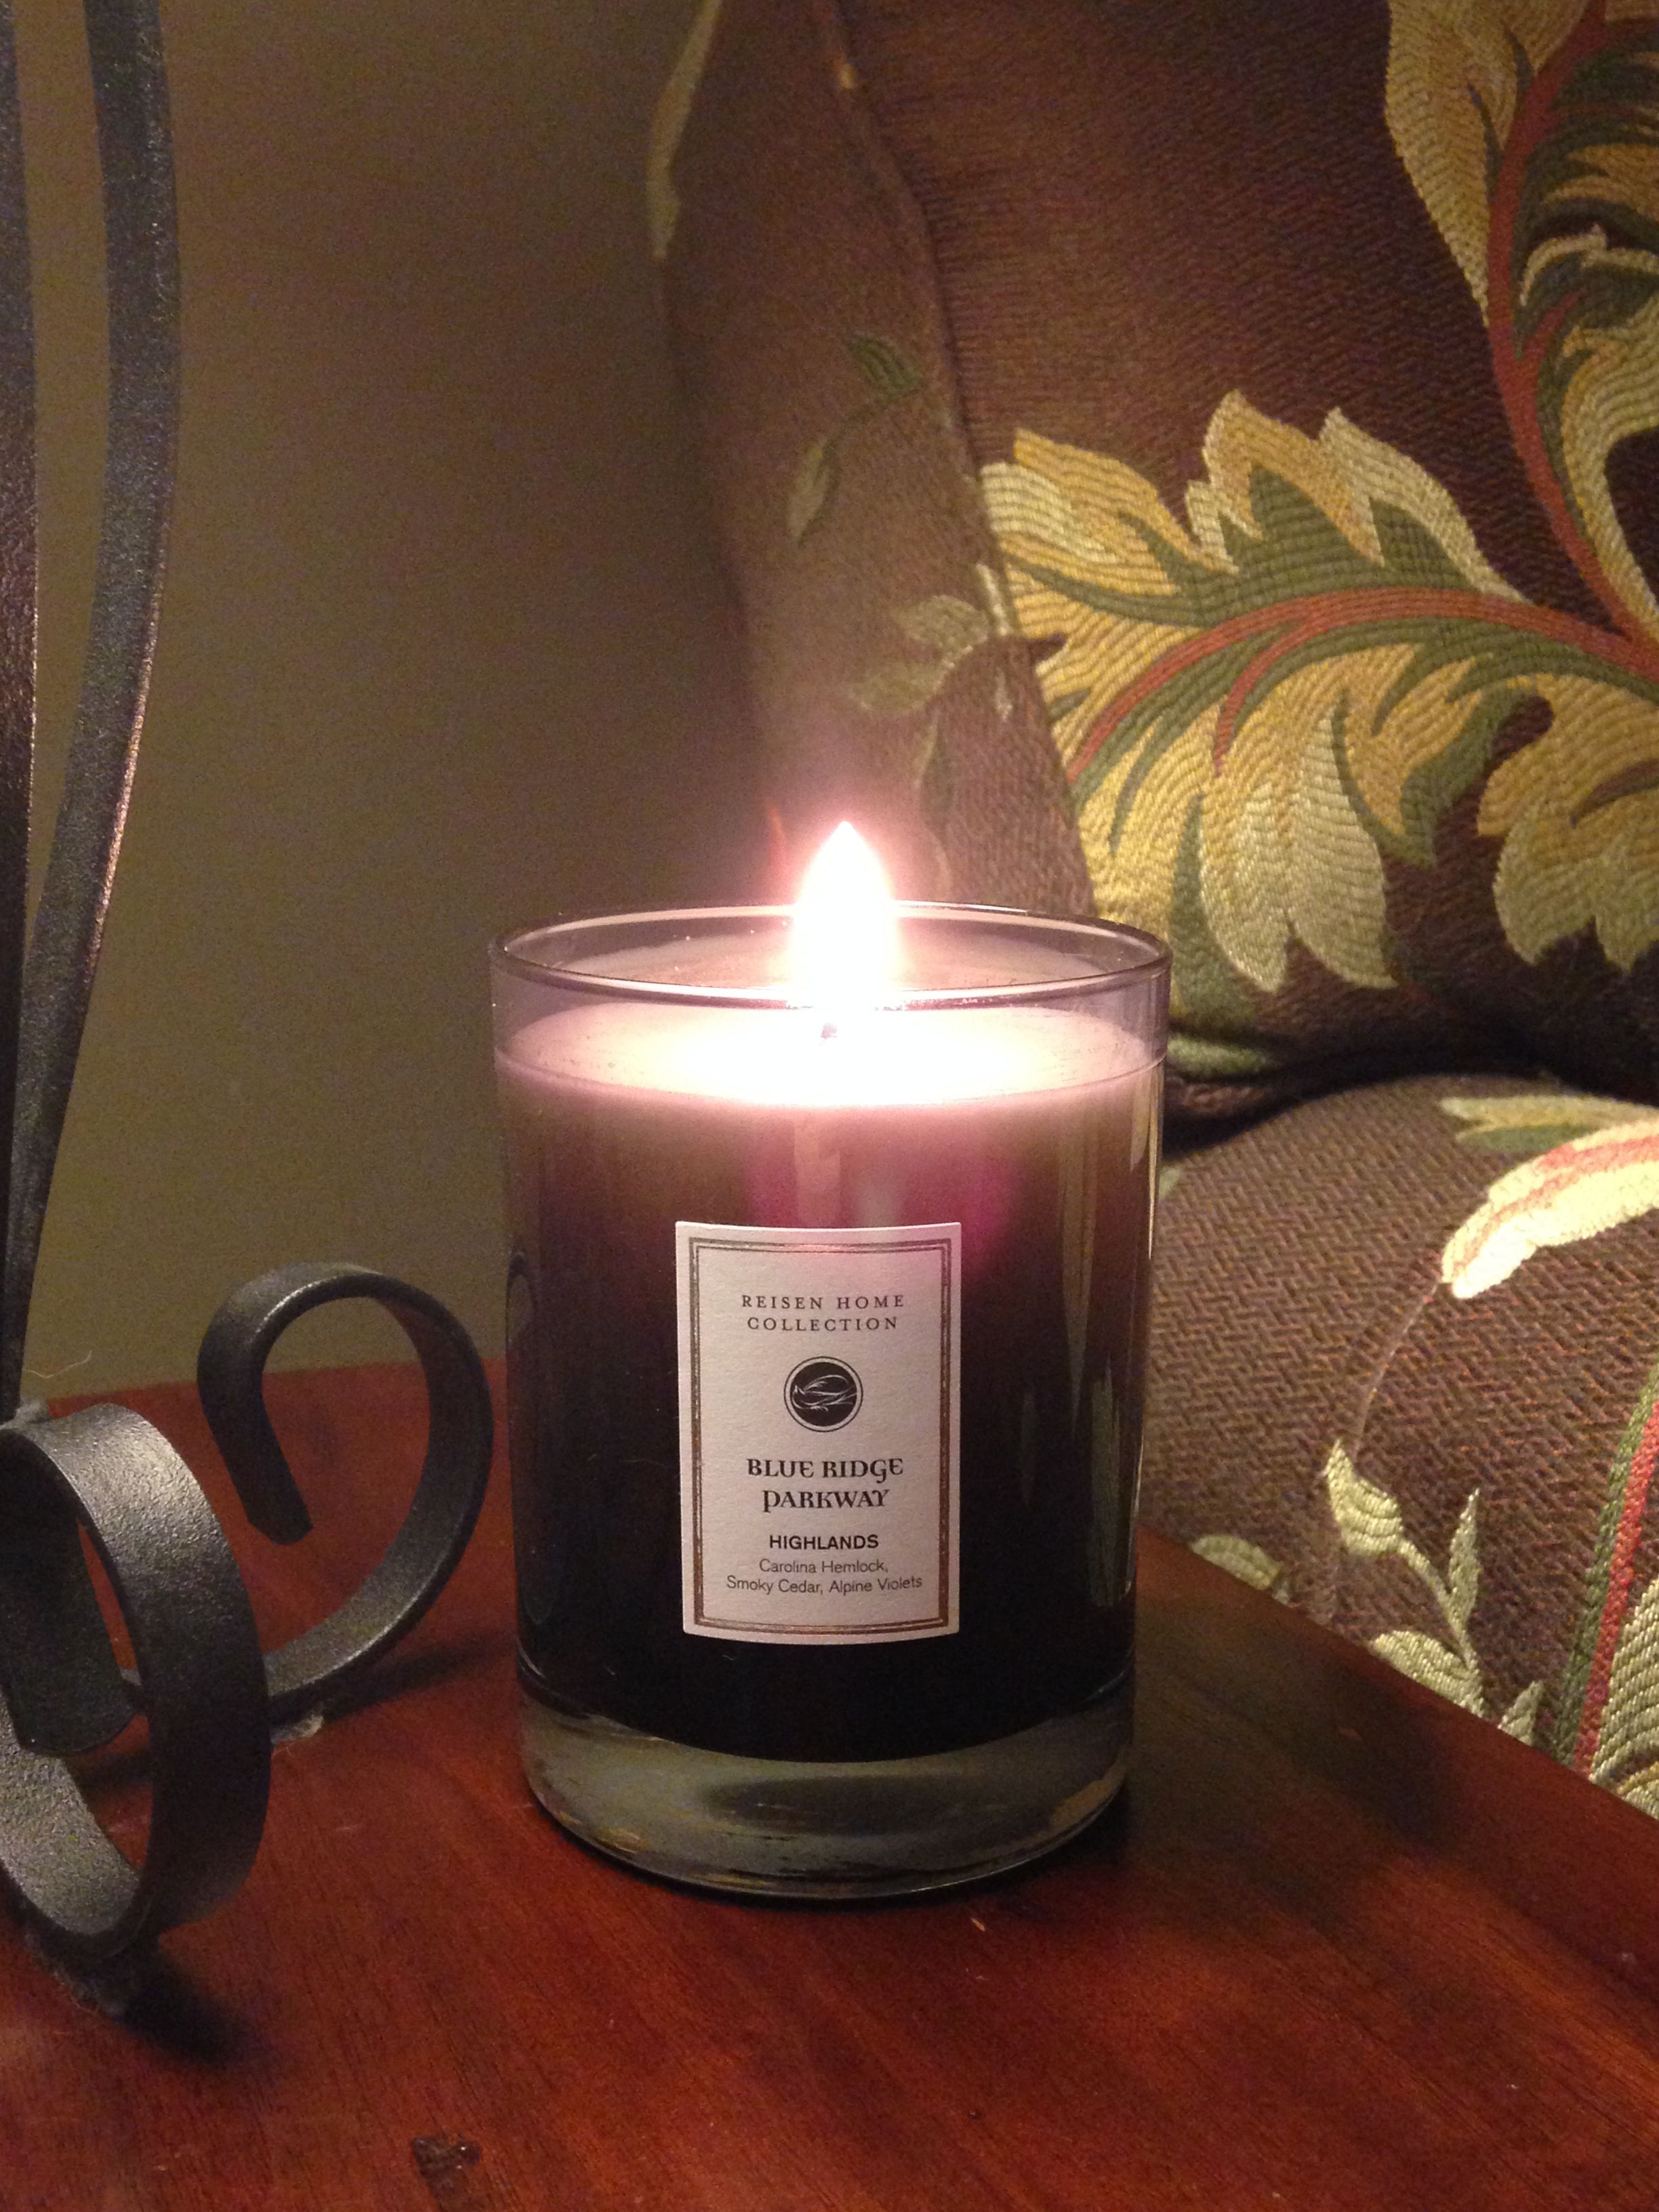 Thankful for the weekend and time with family!  Currently burning: Highlands #ReisenHomeCollection #ReisenHomeCandles #candles